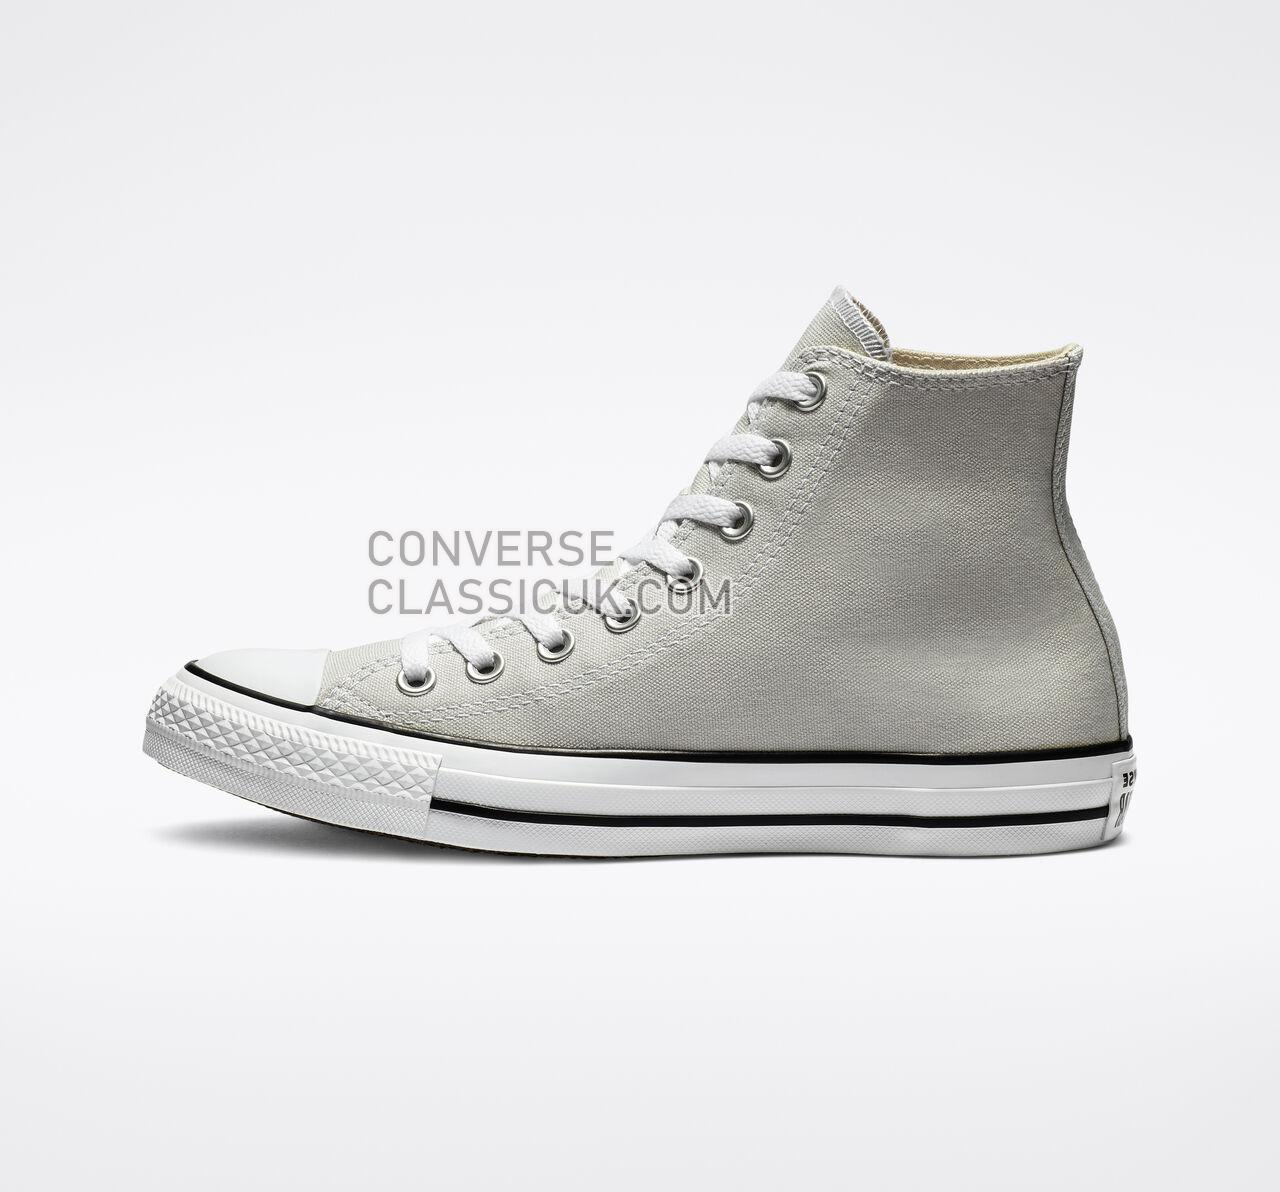 Converse Chuck Taylor All Star Seasonal Color High Top Mens Womens Unisex 161419F Mouse Shoes